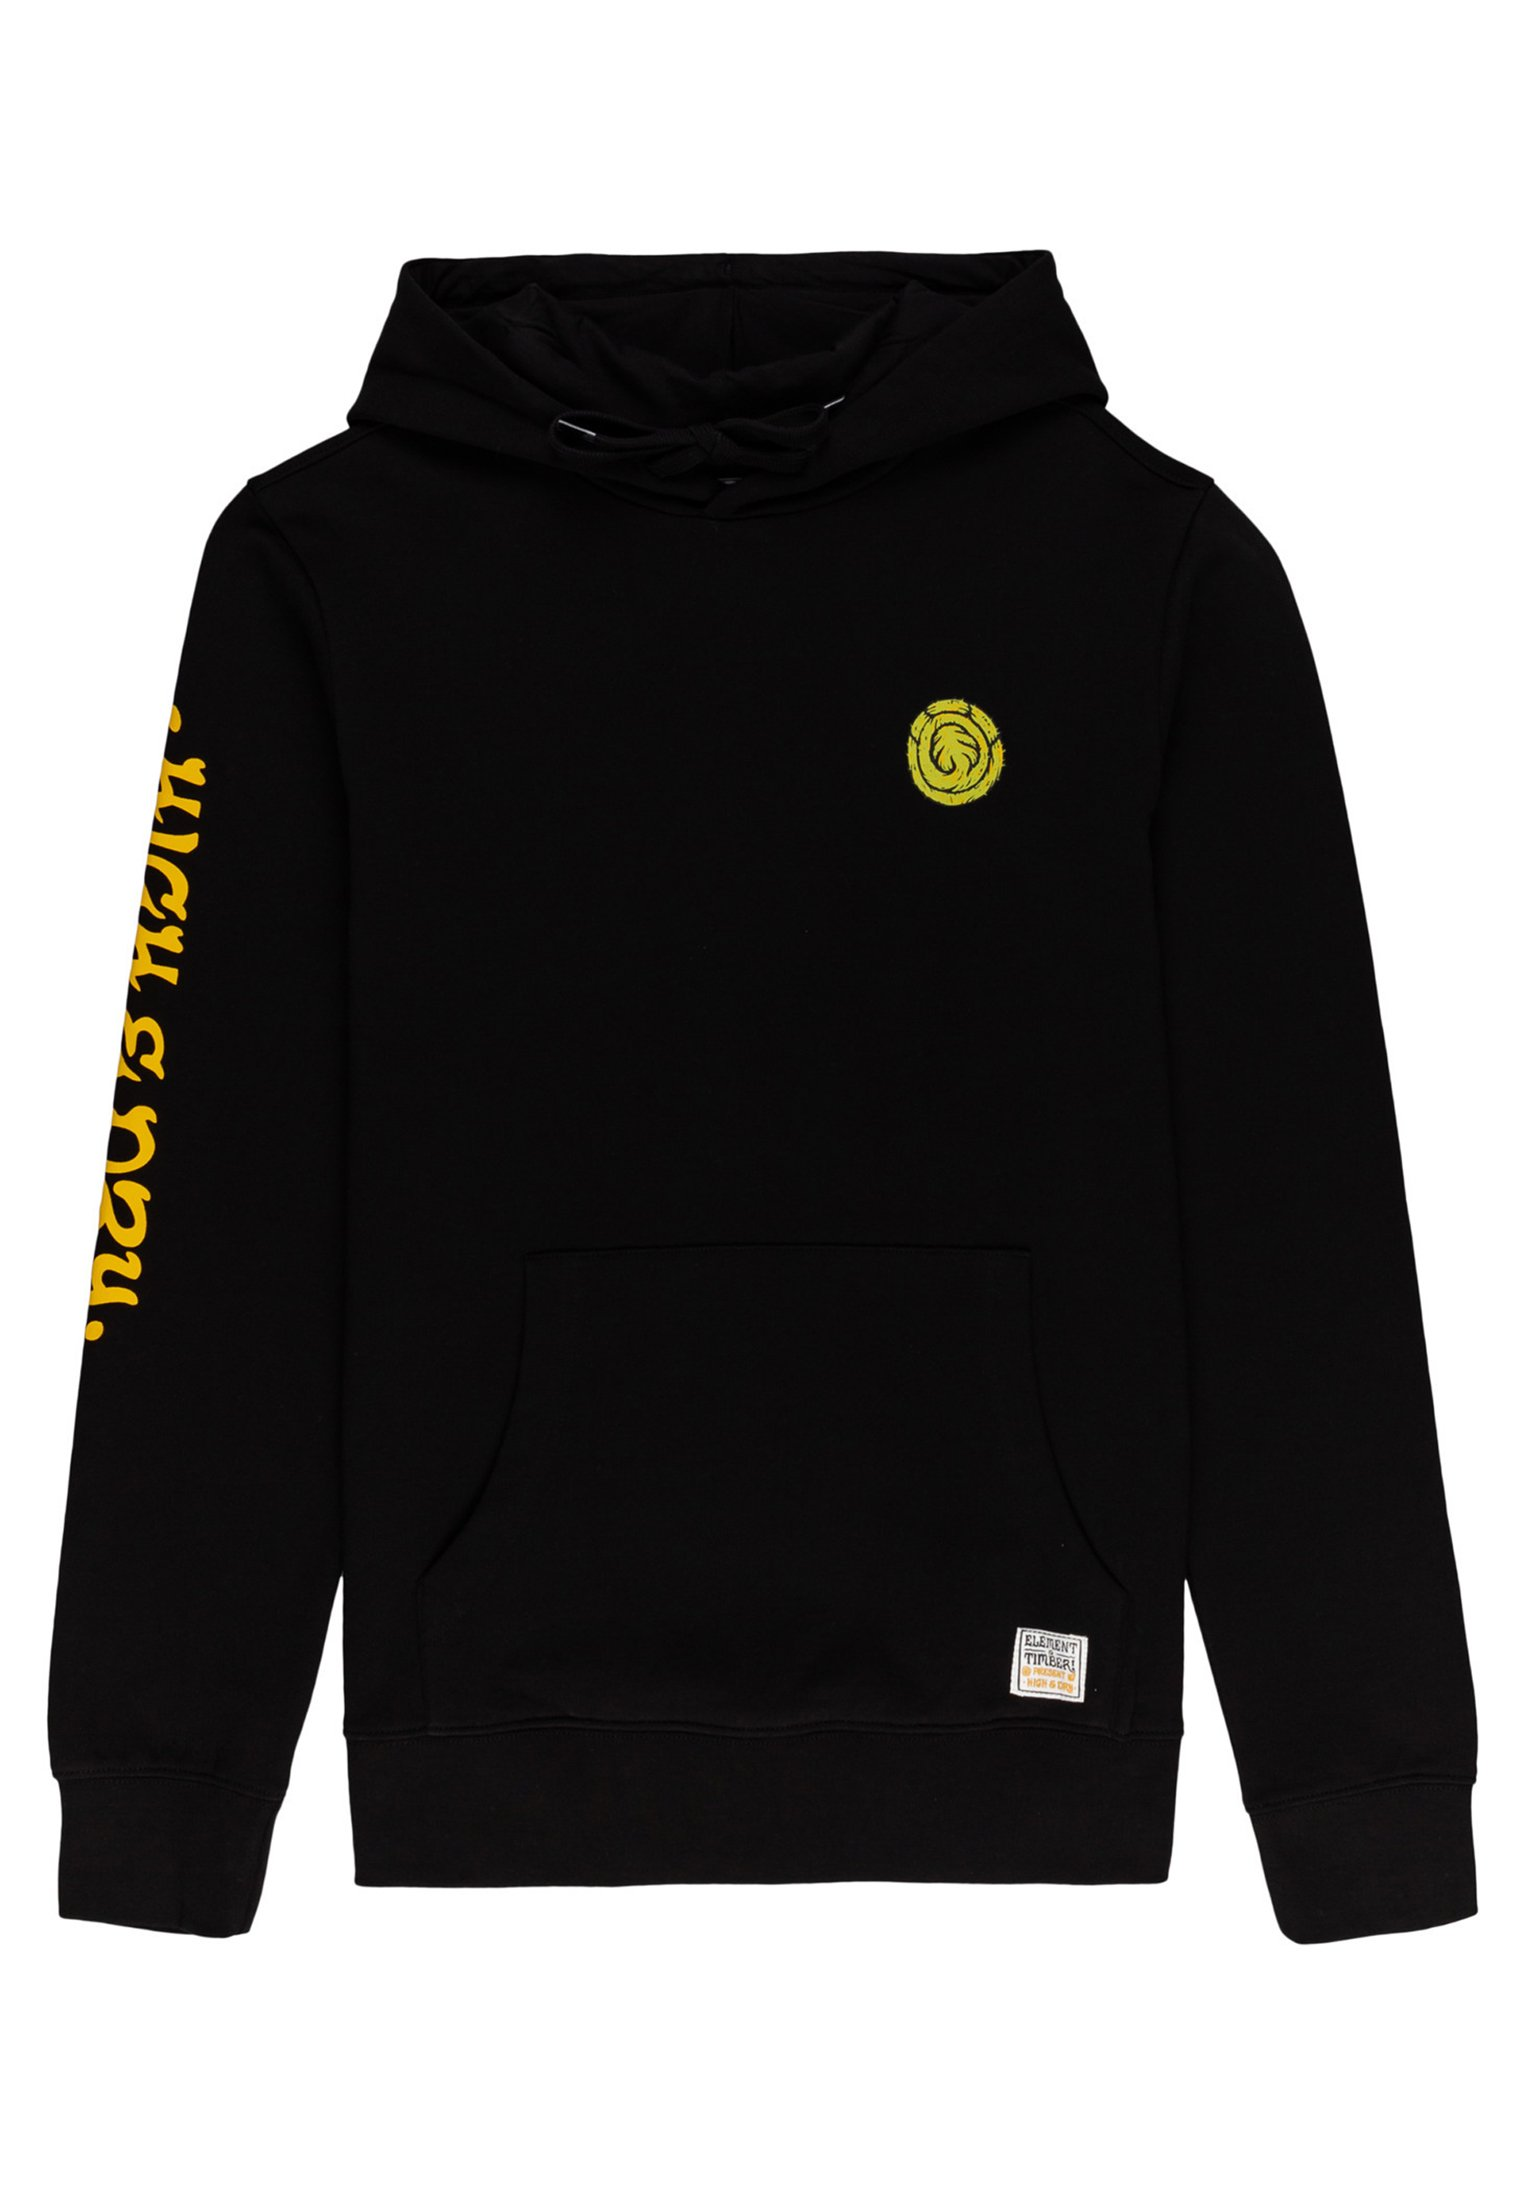 Homme TIMBER THE VISION - Sweat à capuche